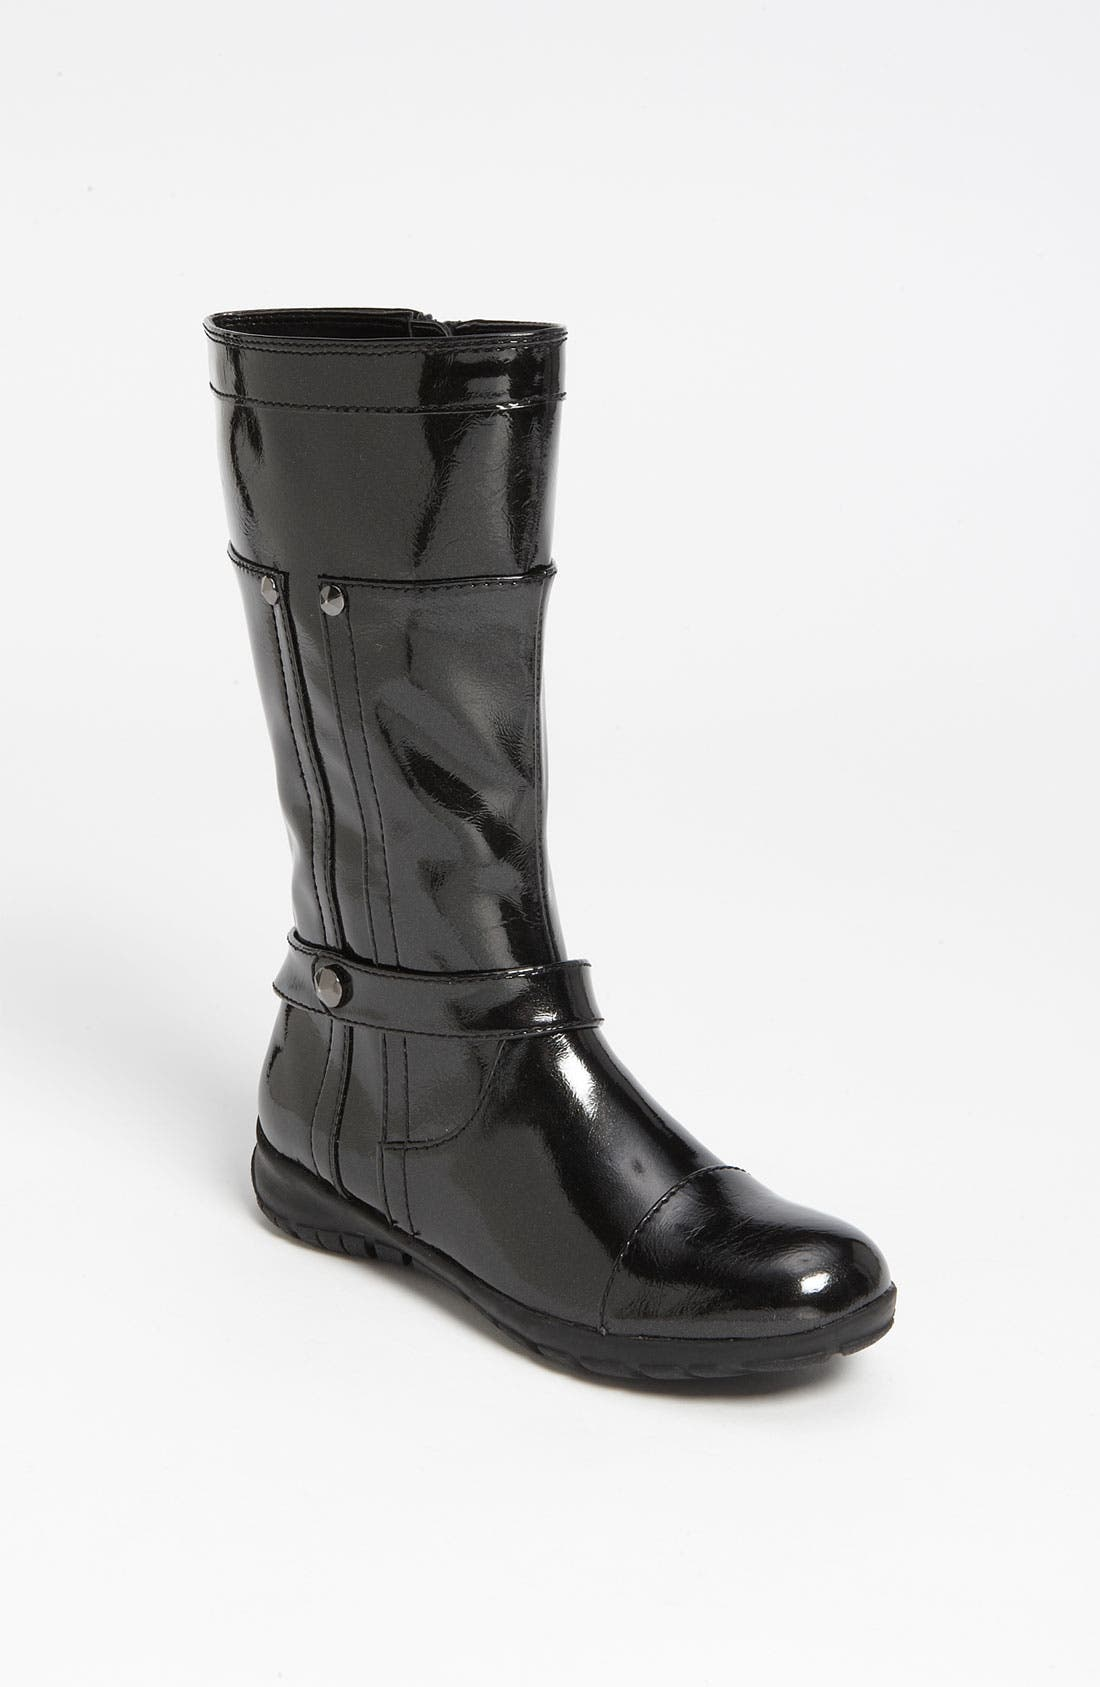 Alternate Image 1 Selected - Nordstrom 'Regan' Fashion Boot (Walker, Toddler, Little Kid & Big Kid)